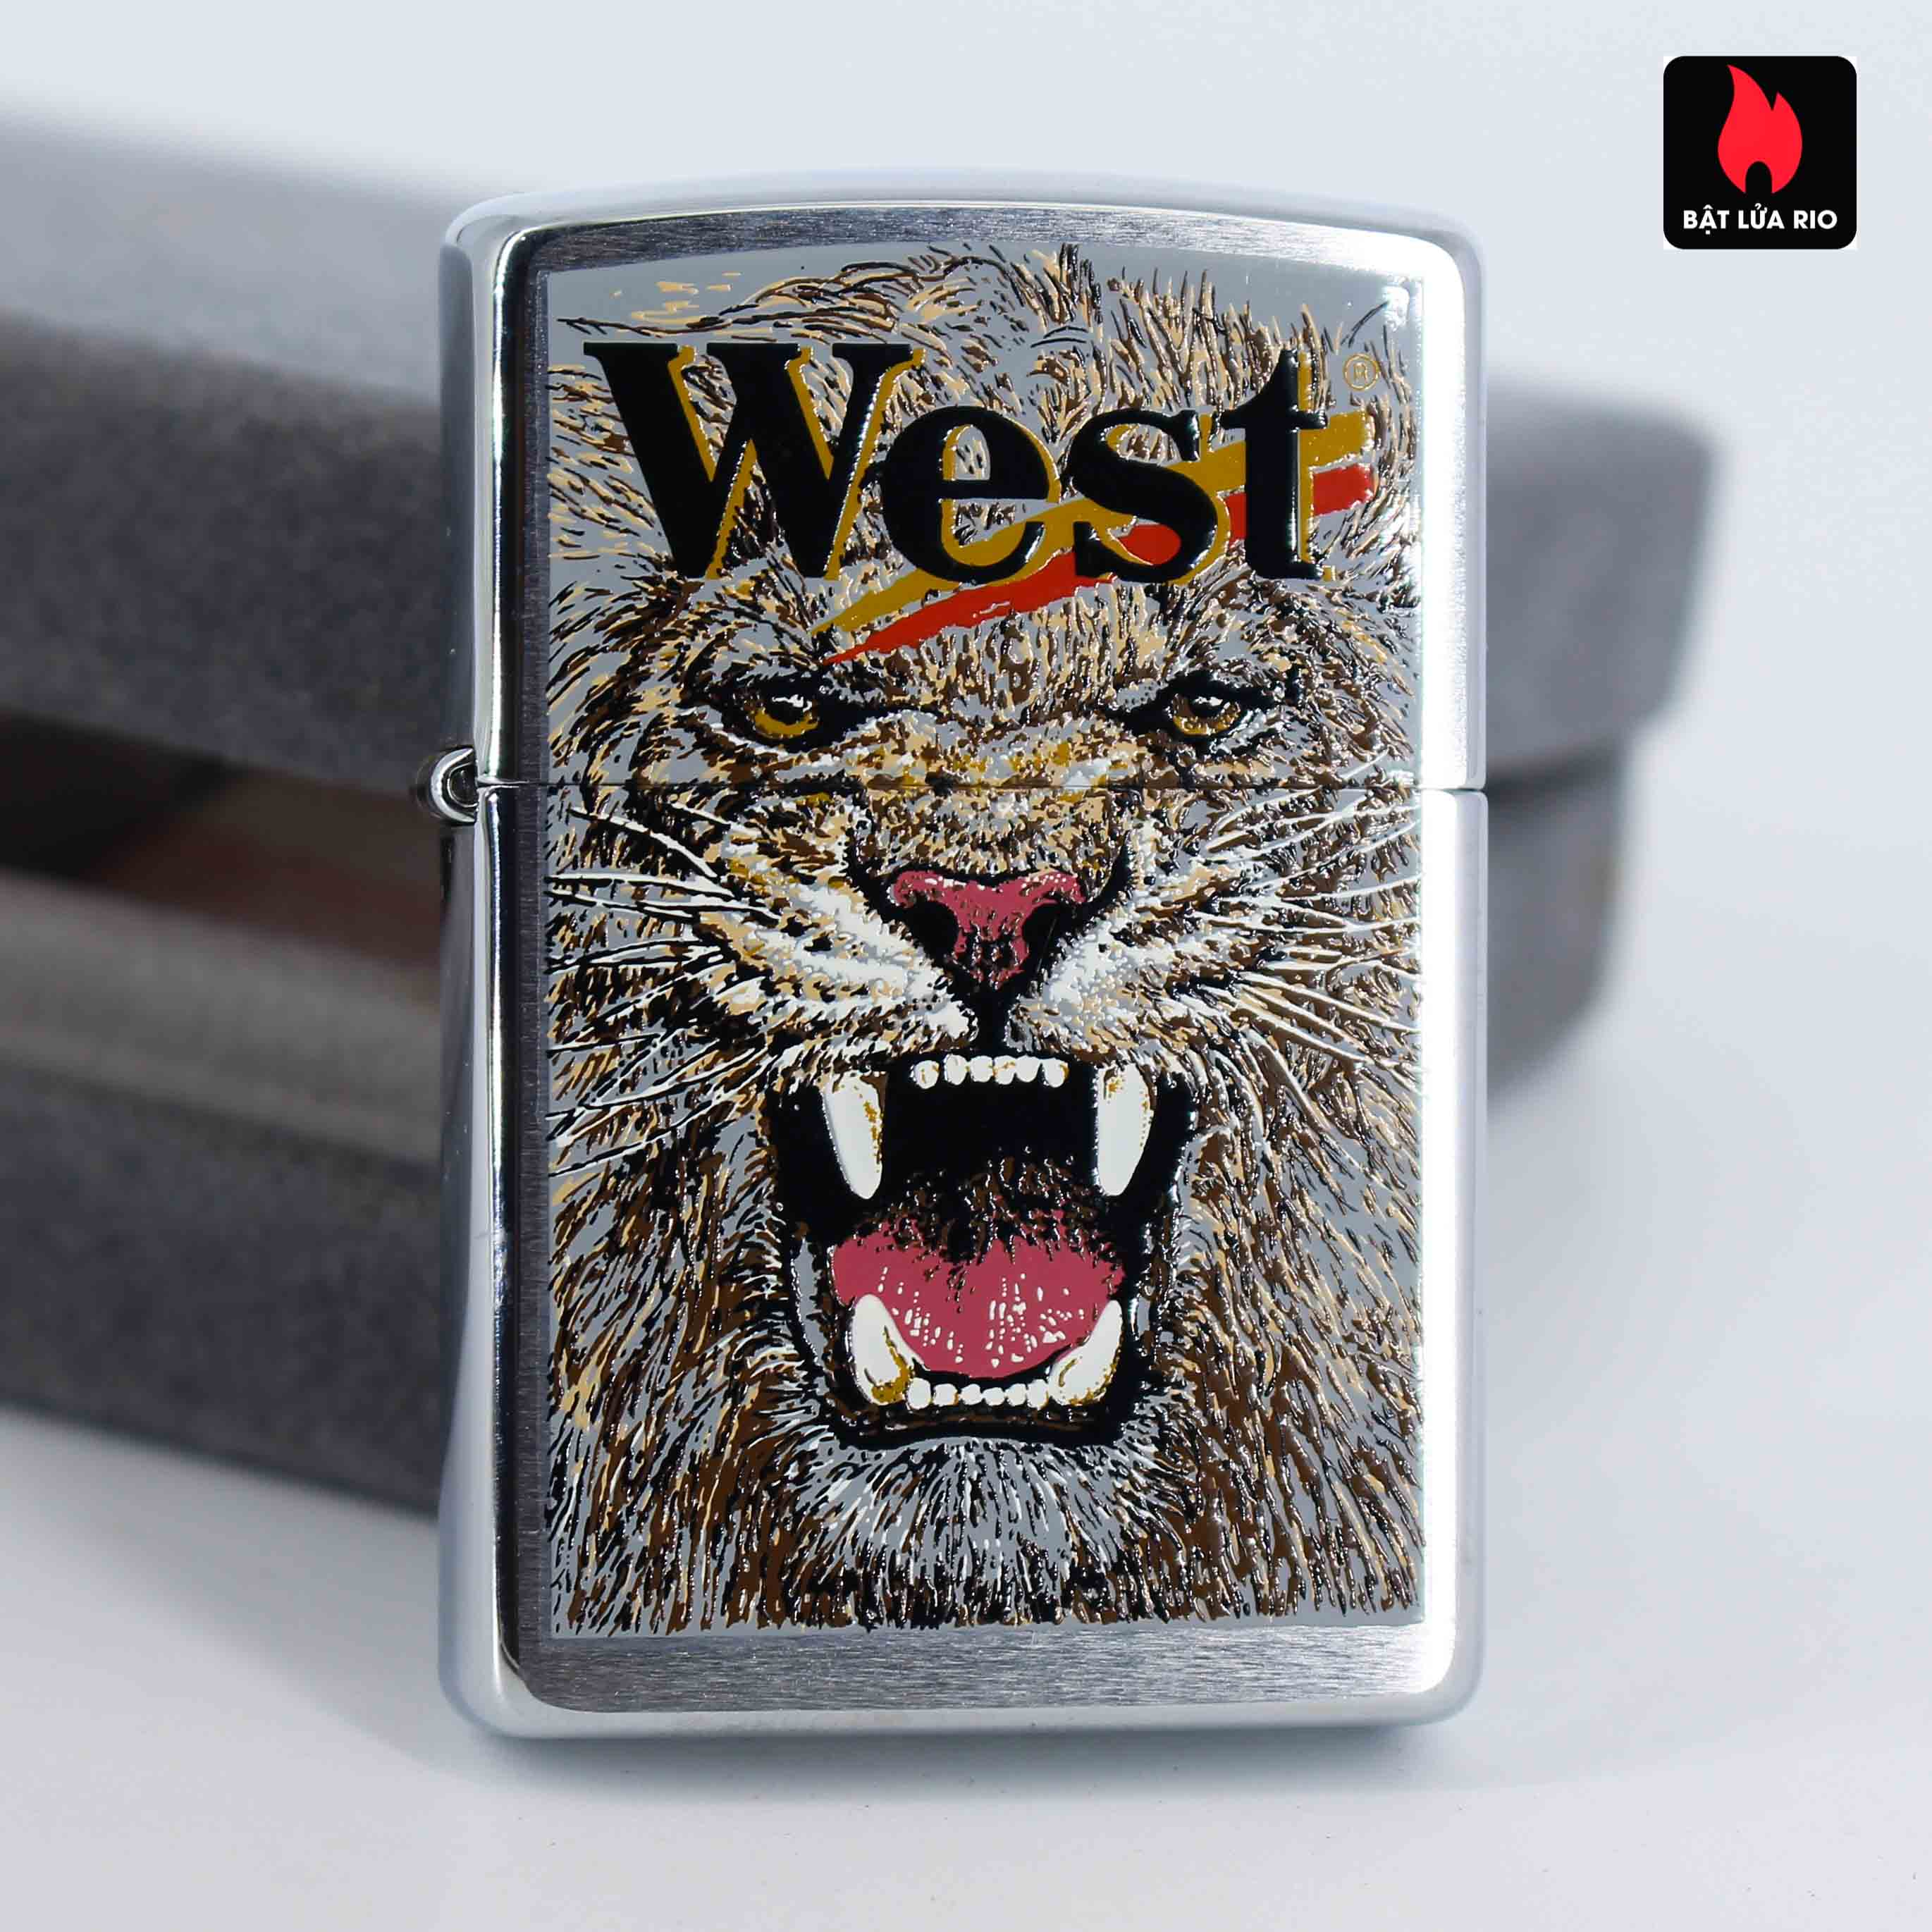 Zippo 2001 - Wild Lighters Edition - Limited Edition /1000 22